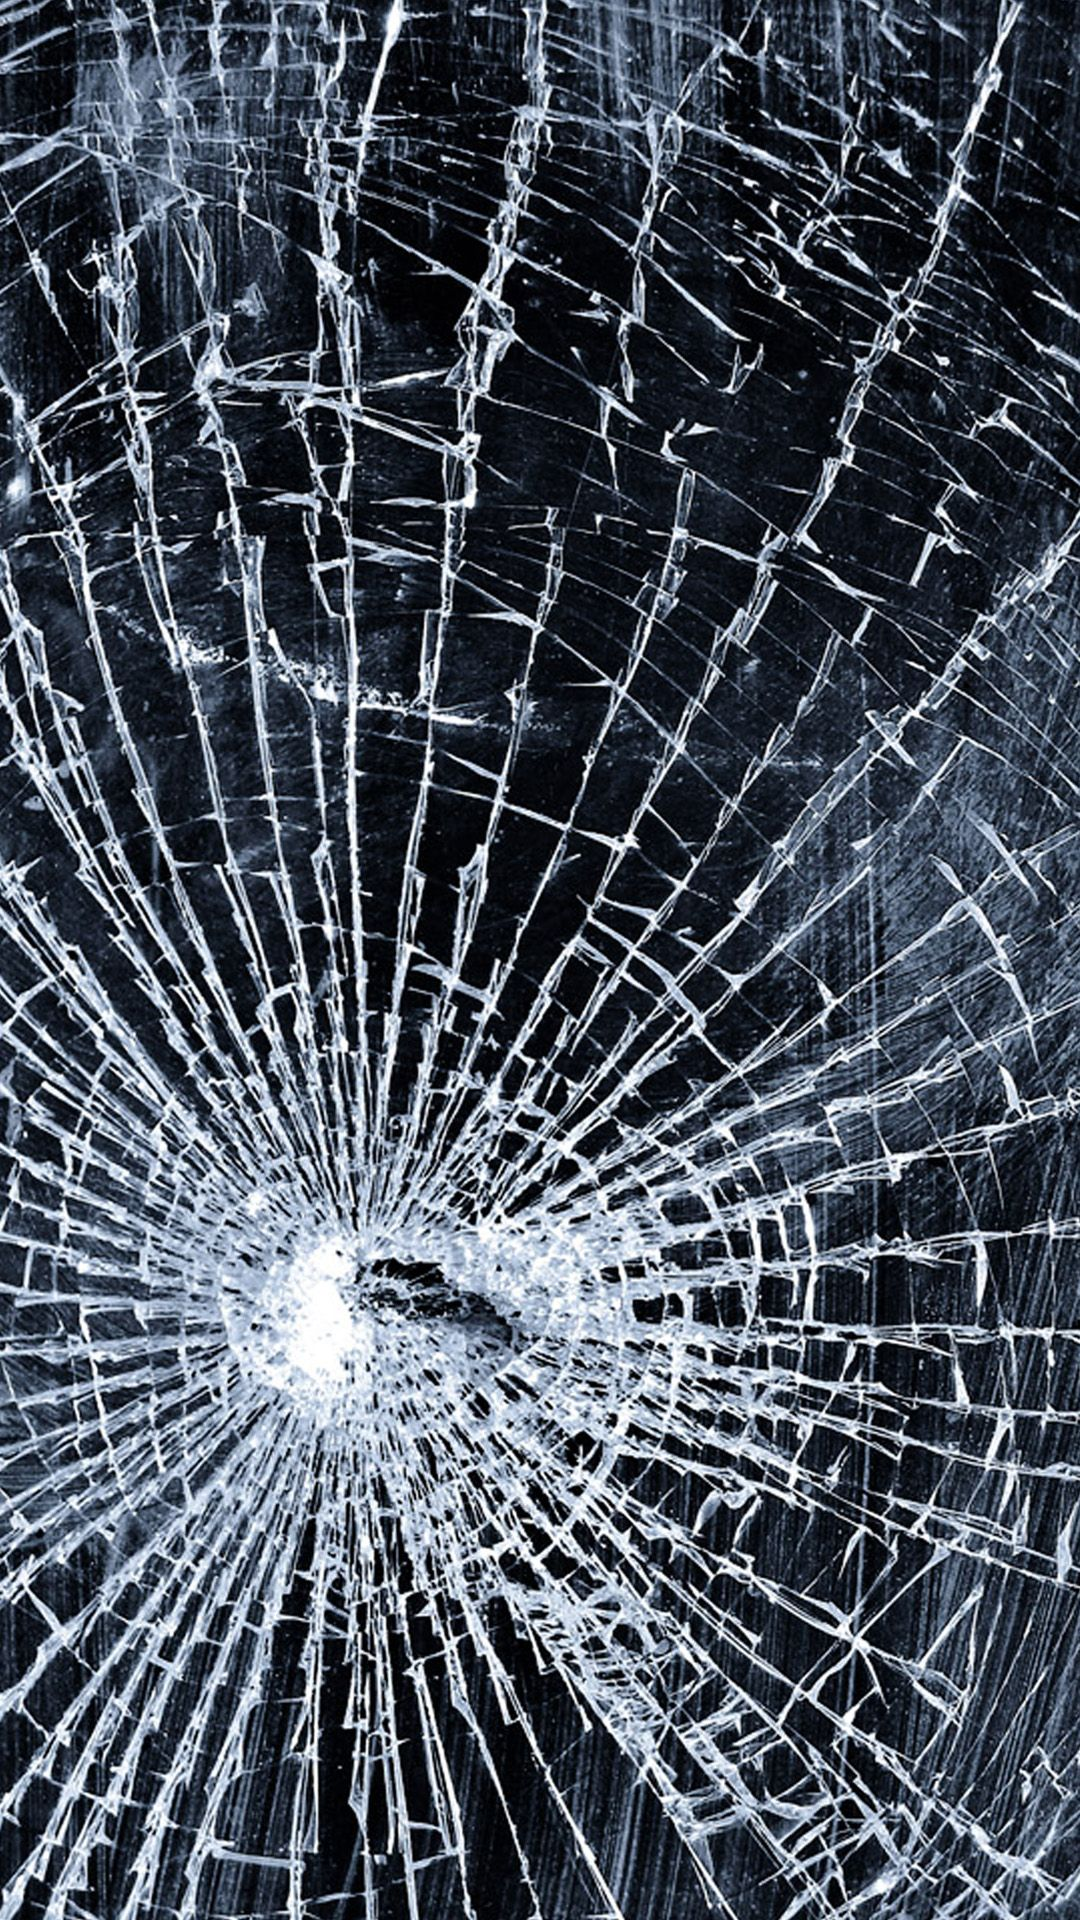 Cracked Screen Wallpaper Hd Broken Screen Wallpaper Cracked Wallpaper Broken Glass Wallpaper